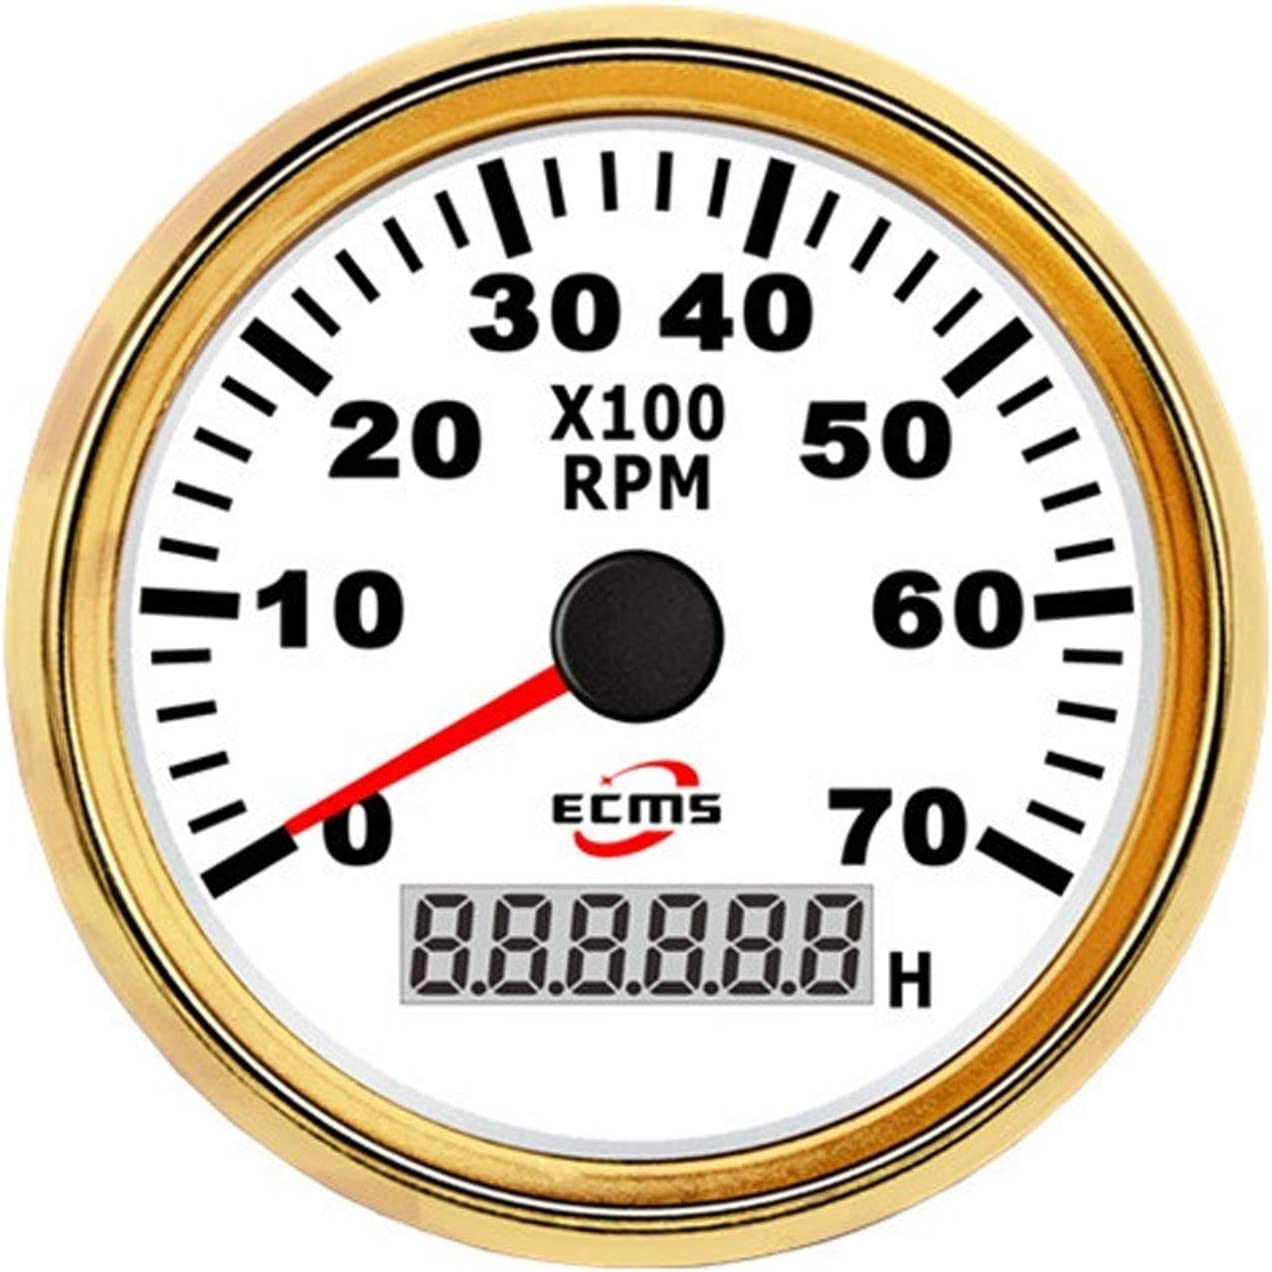 New products, world's highest quality popular! zhuangyif service 85mm Motorcycle Tachometer RPM wit Meter Gauge 7000RPM